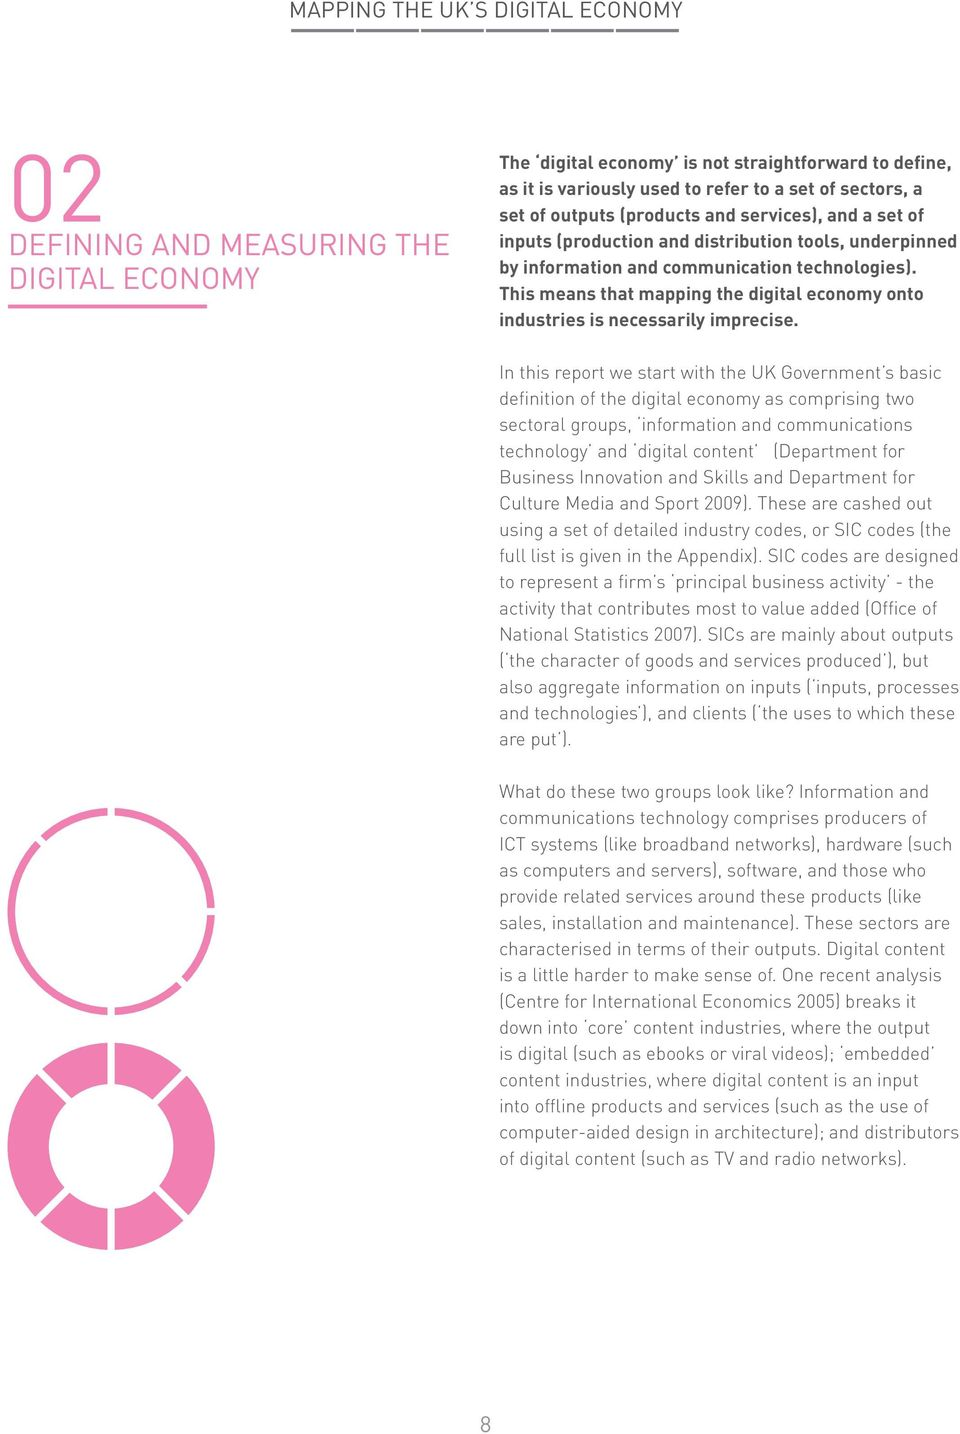 In this report we start with the UK Government s basic definition of the digital economy as comprising two sectoral groups, information and communications technology and digital content (Department